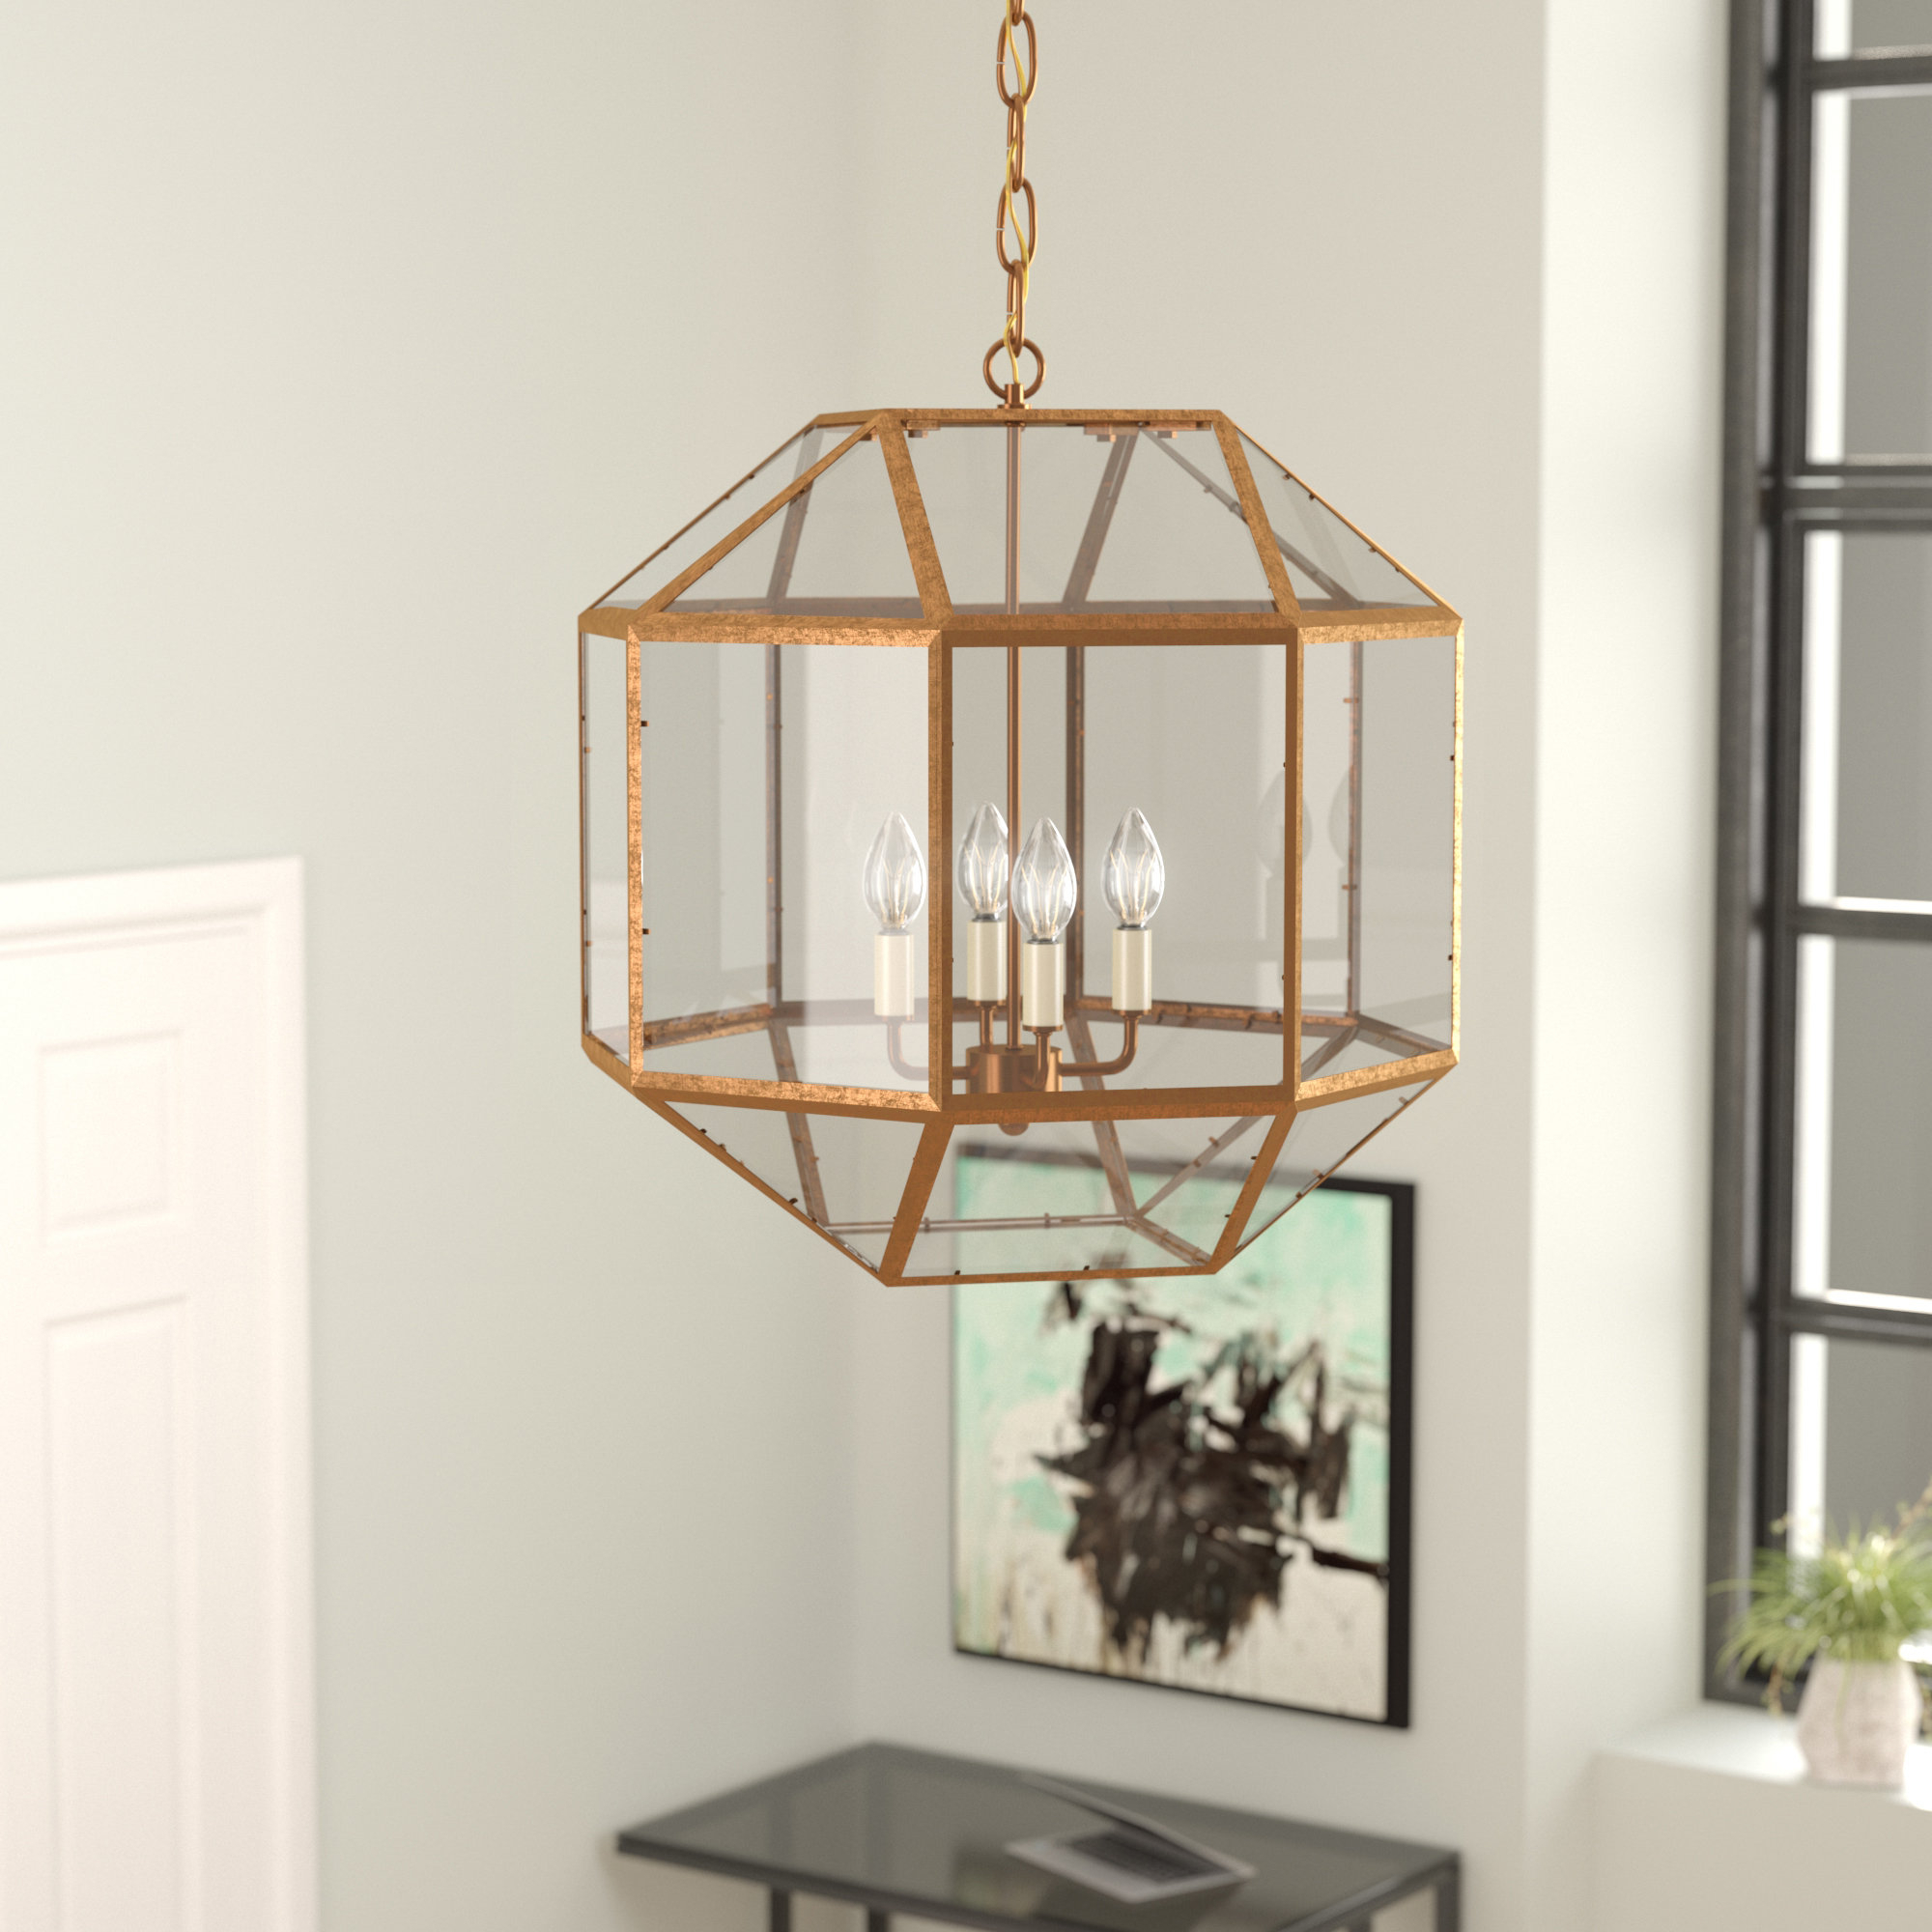 [%Geometric Chandeliers Sale – Up To 65% Off Until September Within Popular Cavanagh 4 Light Geometric Chandeliers|Cavanagh 4 Light Geometric Chandeliers With Regard To Newest Geometric Chandeliers Sale – Up To 65% Off Until September|Famous Cavanagh 4 Light Geometric Chandeliers For Geometric Chandeliers Sale – Up To 65% Off Until September|2020 Geometric Chandeliers Sale – Up To 65% Off Until September Inside Cavanagh 4 Light Geometric Chandeliers%] (View 2 of 25)